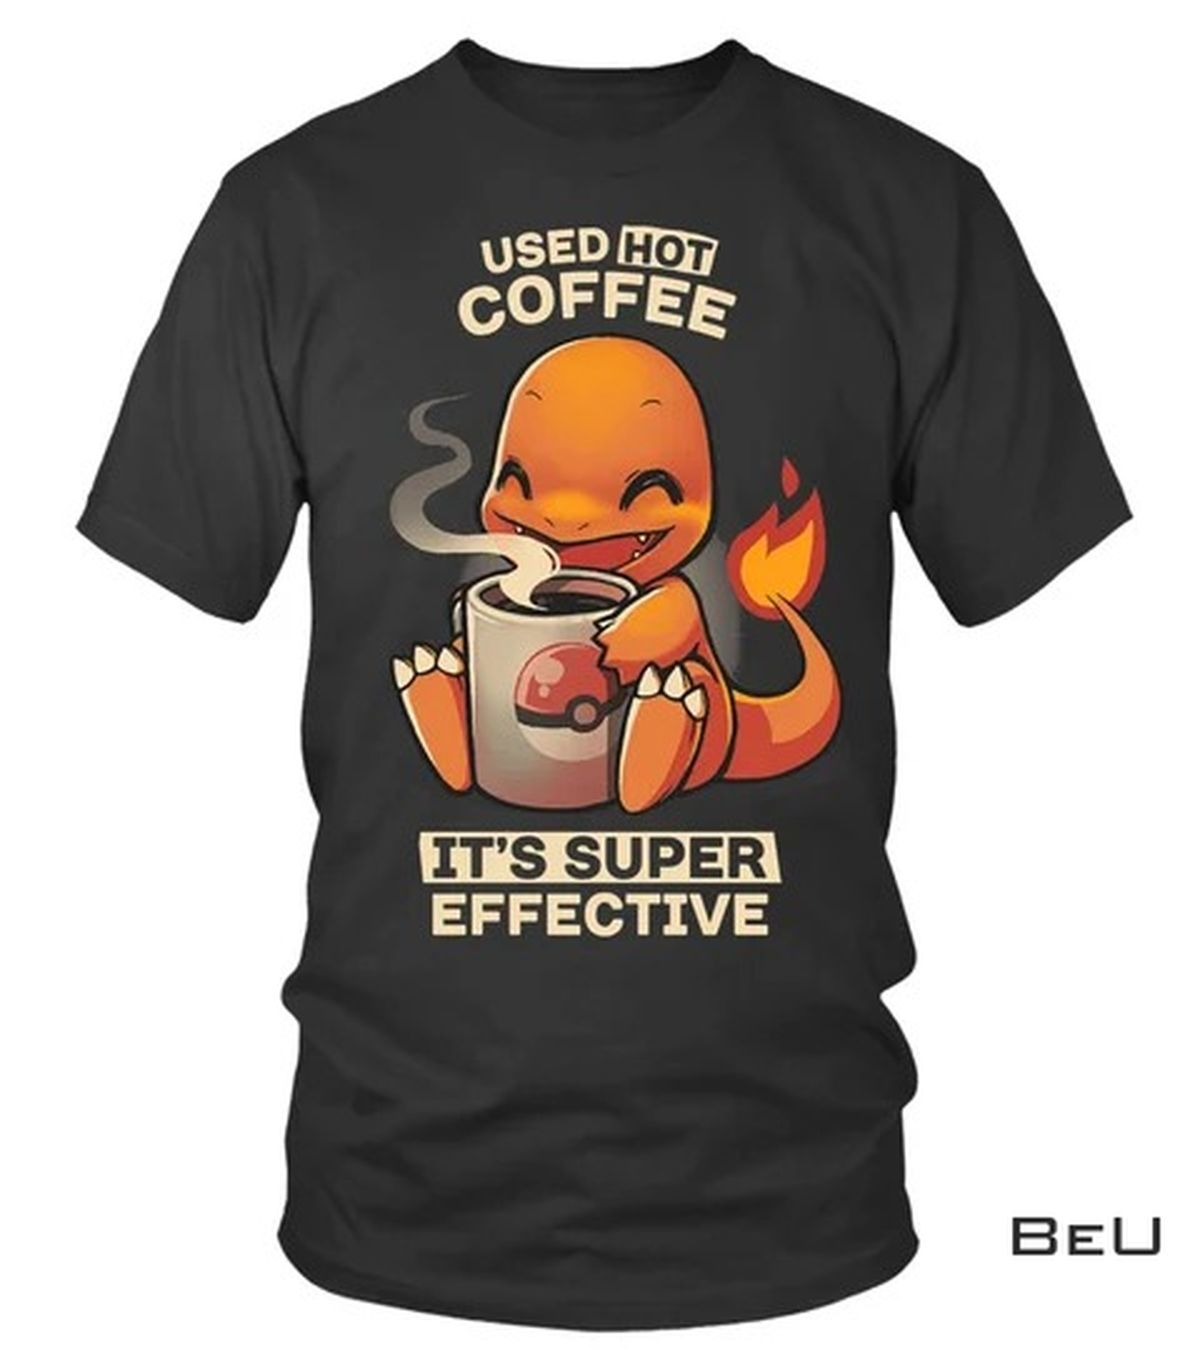 Sale Off Pokemon Used Hot Coffee It's Super Effective Shirt